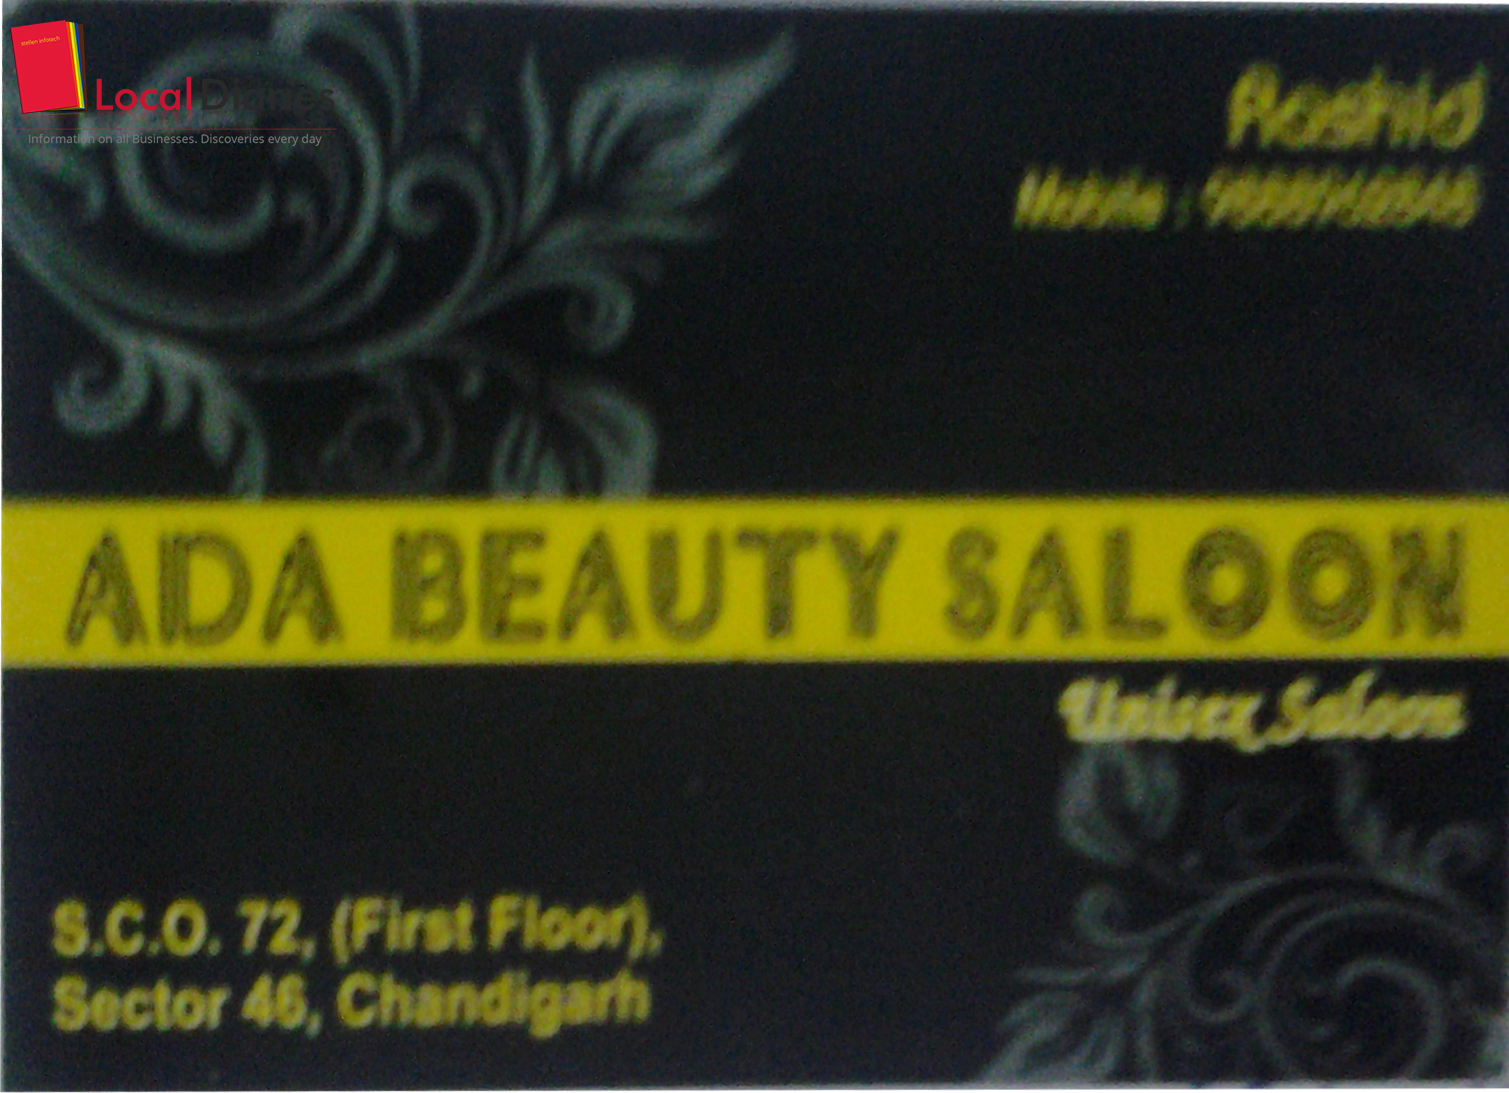 Ada beauty salon in sector 46 c chandigarh localdiaries for Ada beauty salon